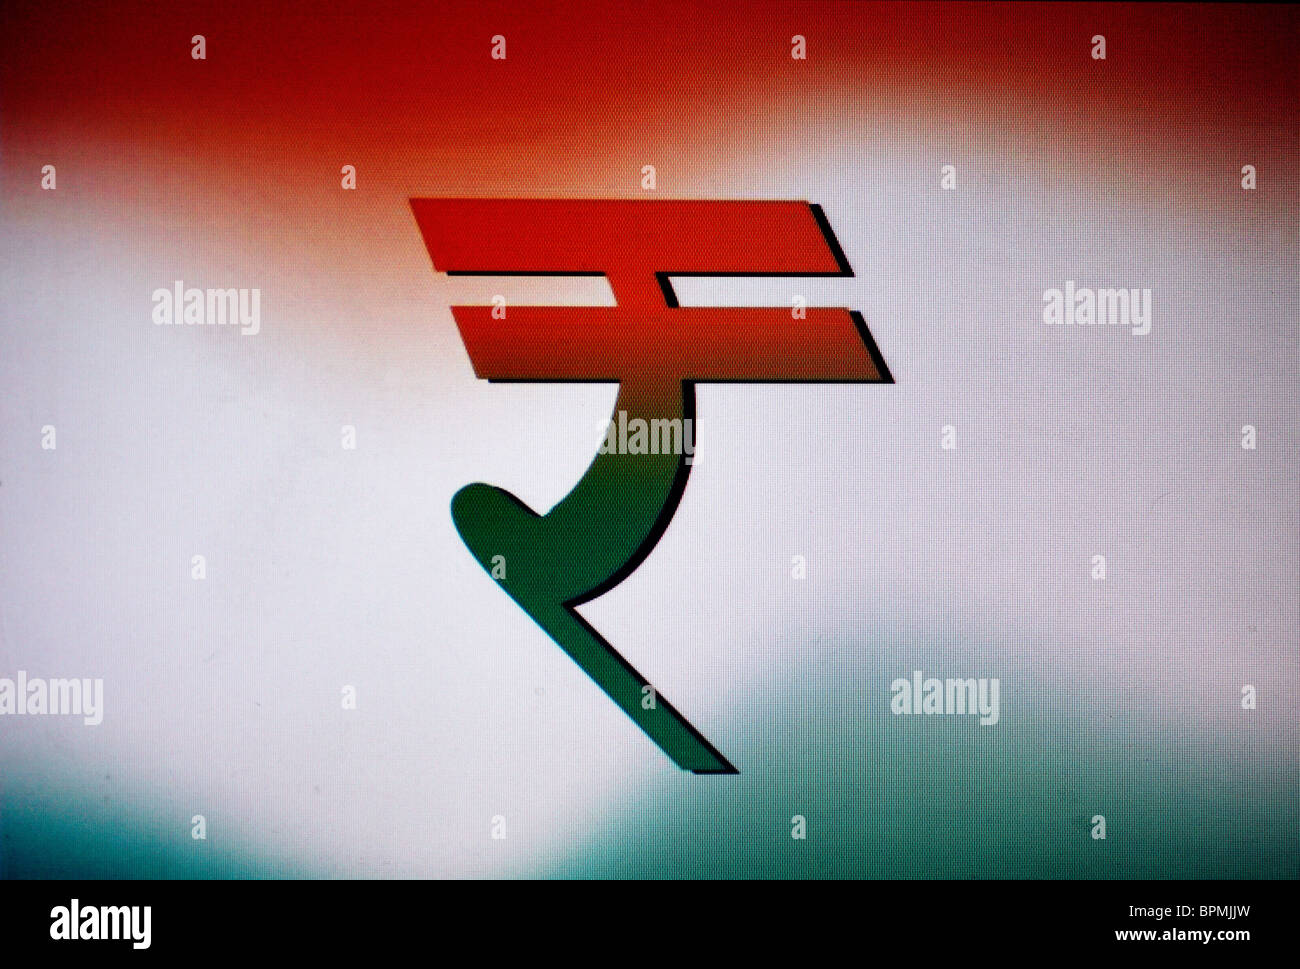 New Currency Symbol Indian Rupee Stock Photos New Currency Symbol